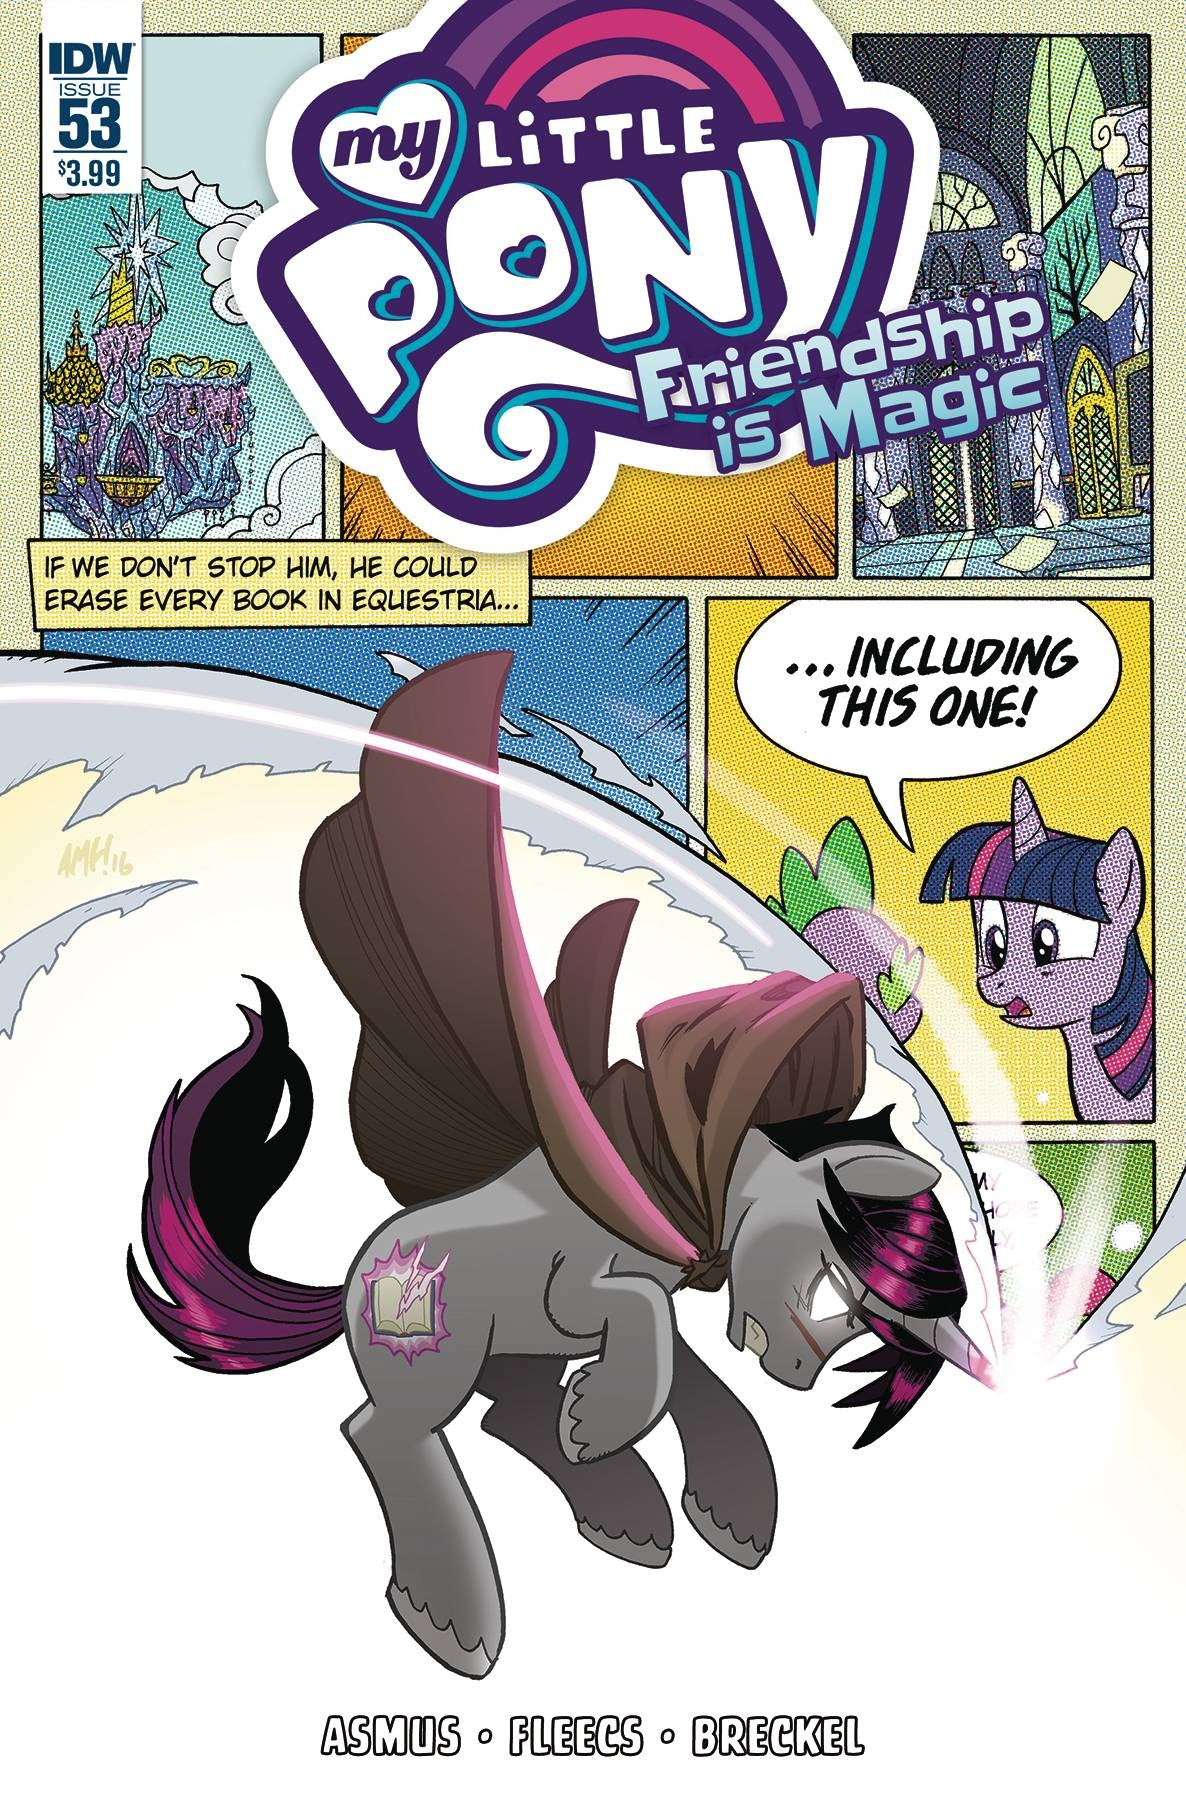 MY LITTLE PONY FRIENDSHIP IS MAGIC #53